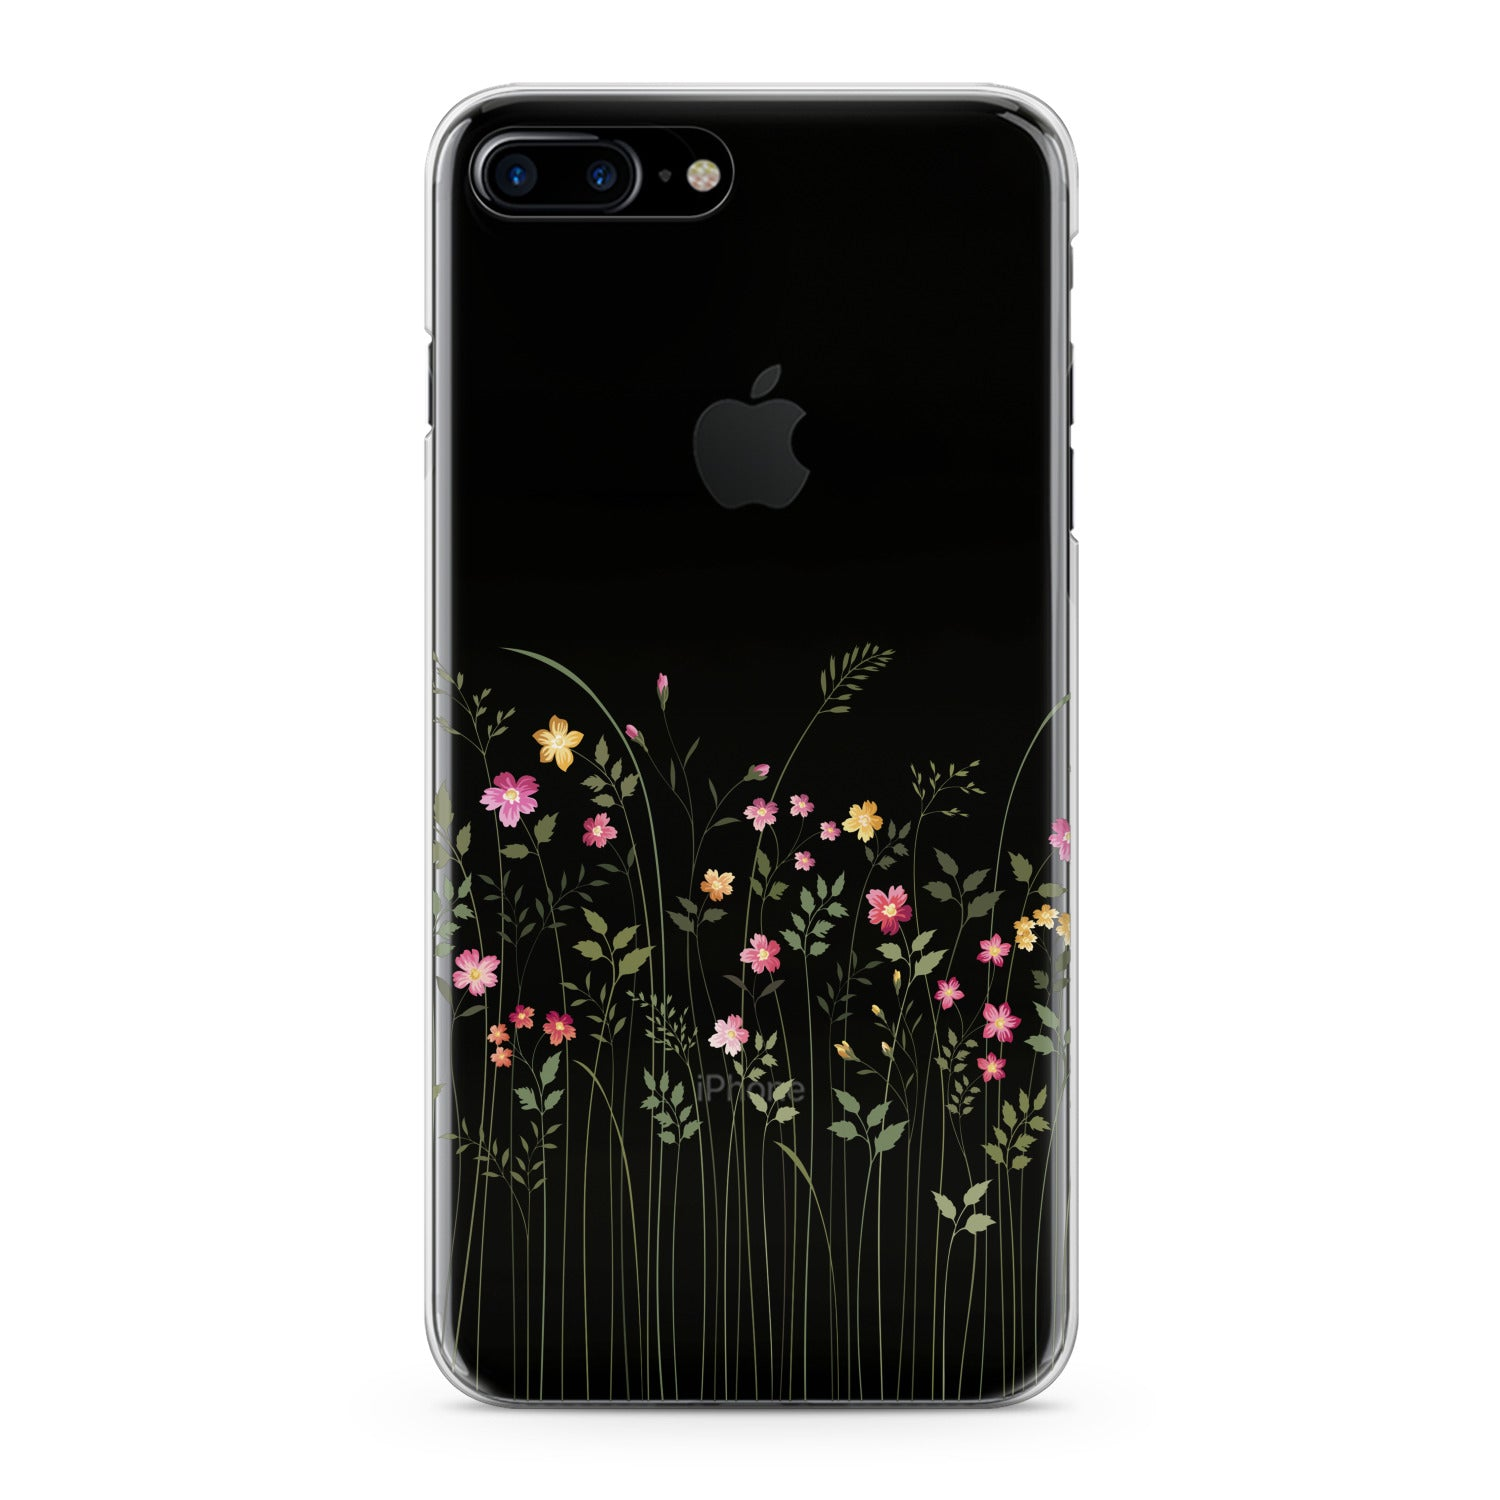 Lex Altern Gentle Wildflowers Art Phone Case for your iPhone & Android phone.